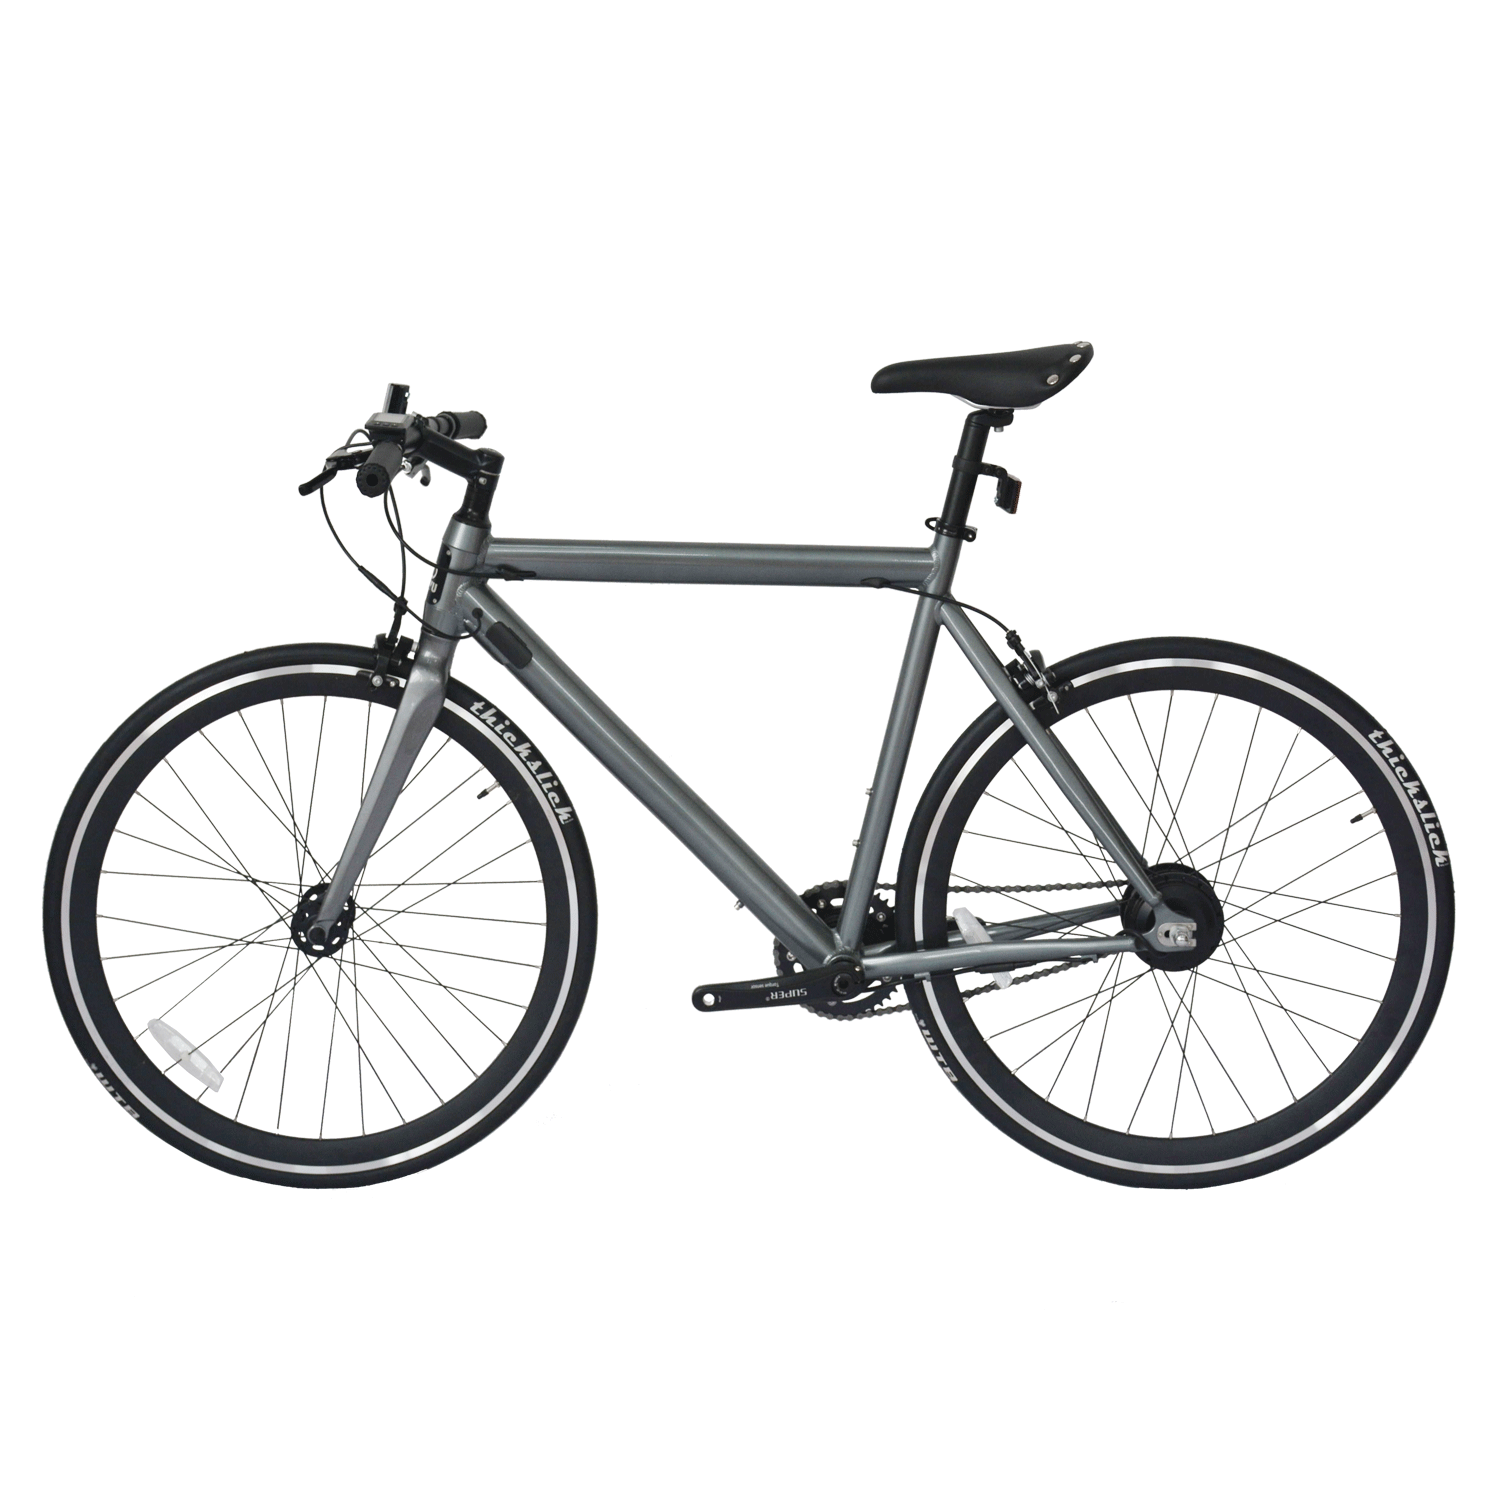 1 Speed Super Light Commuter eBike 250W - FLASH SALE - State Physical